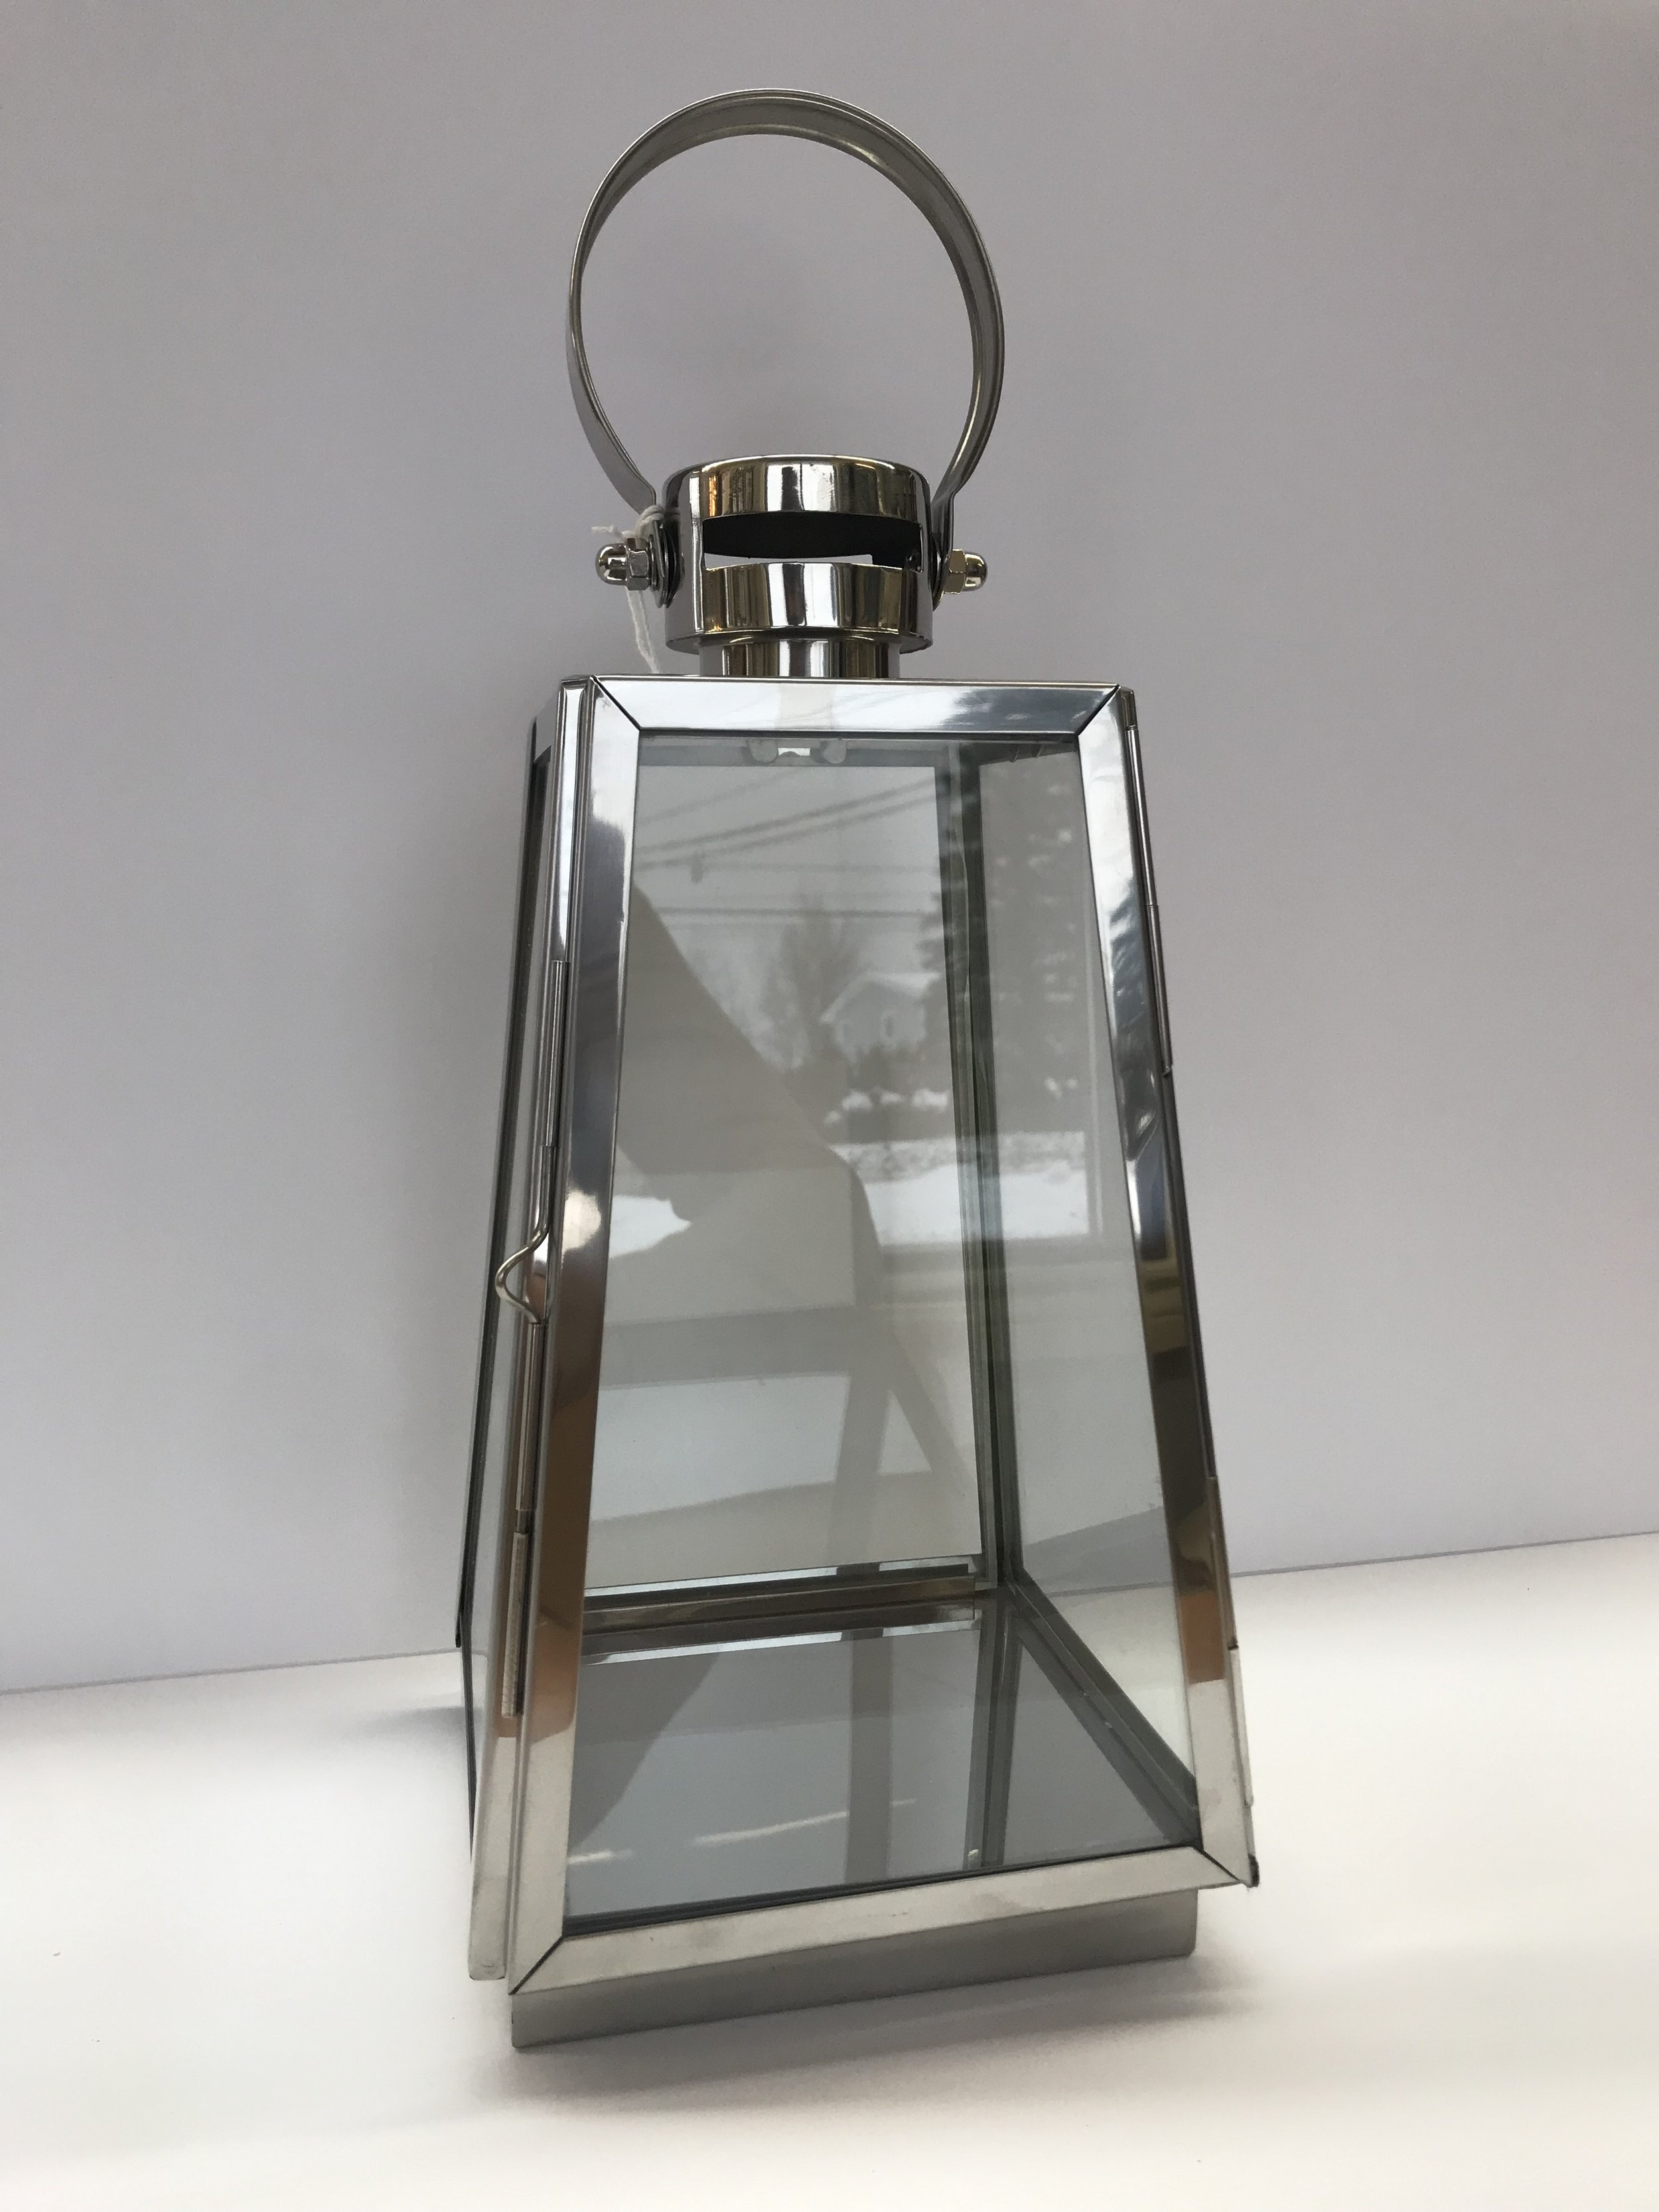 Stainless Steel Lantern - Colour: Stainless SteelDimensions: 16